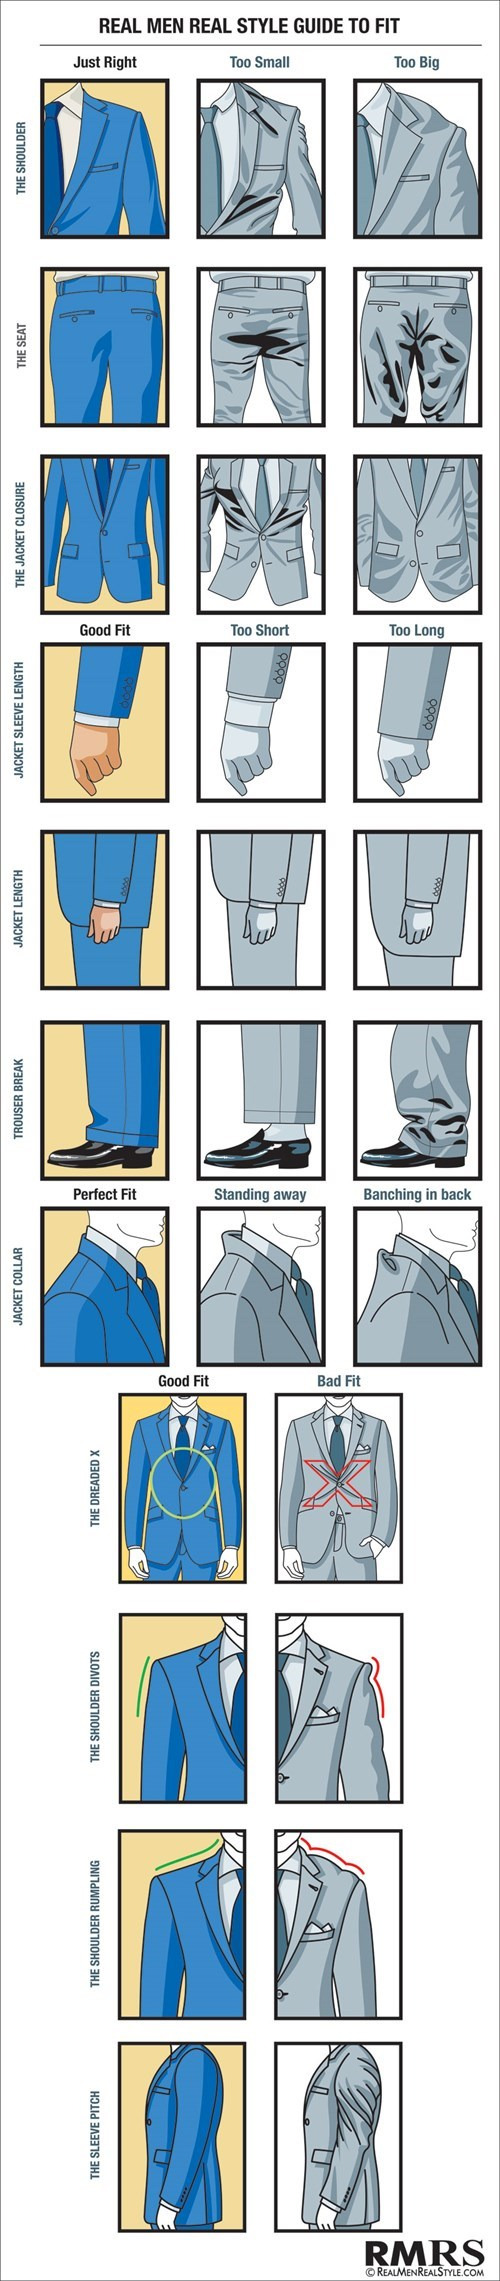 fashion,guide,suit